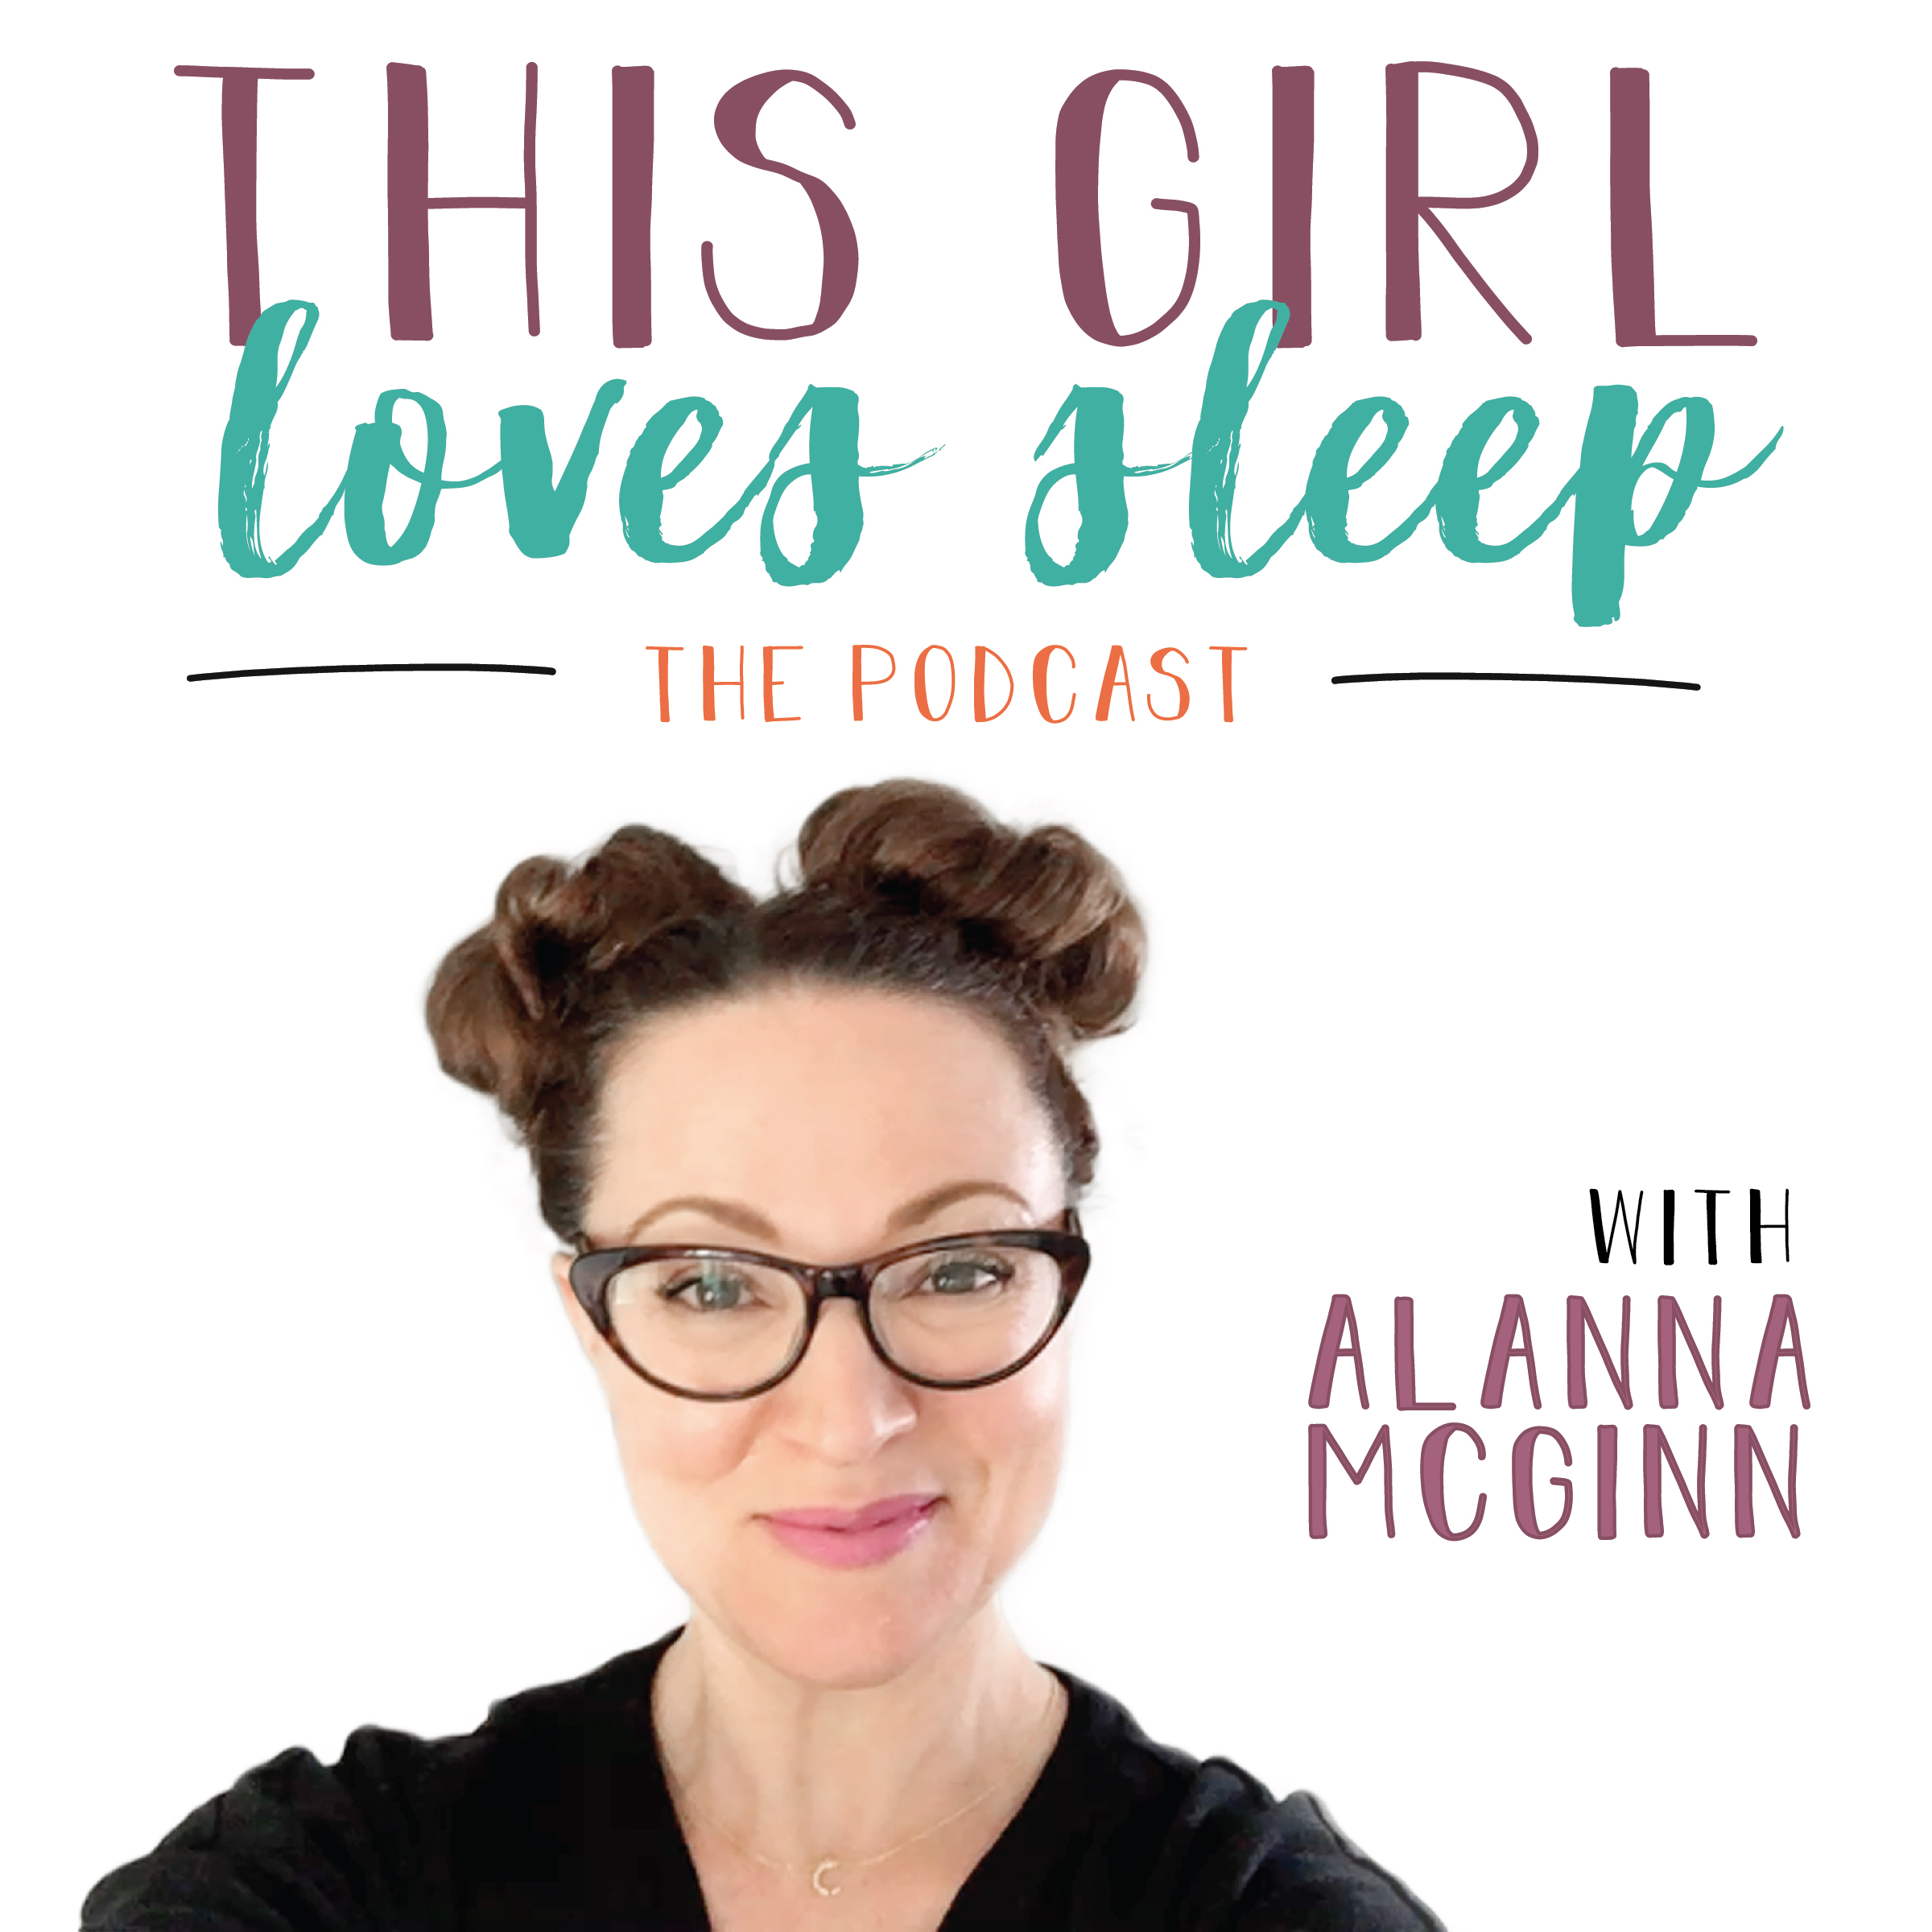 Episode 18: Holiday Toddler Sleep Hangover